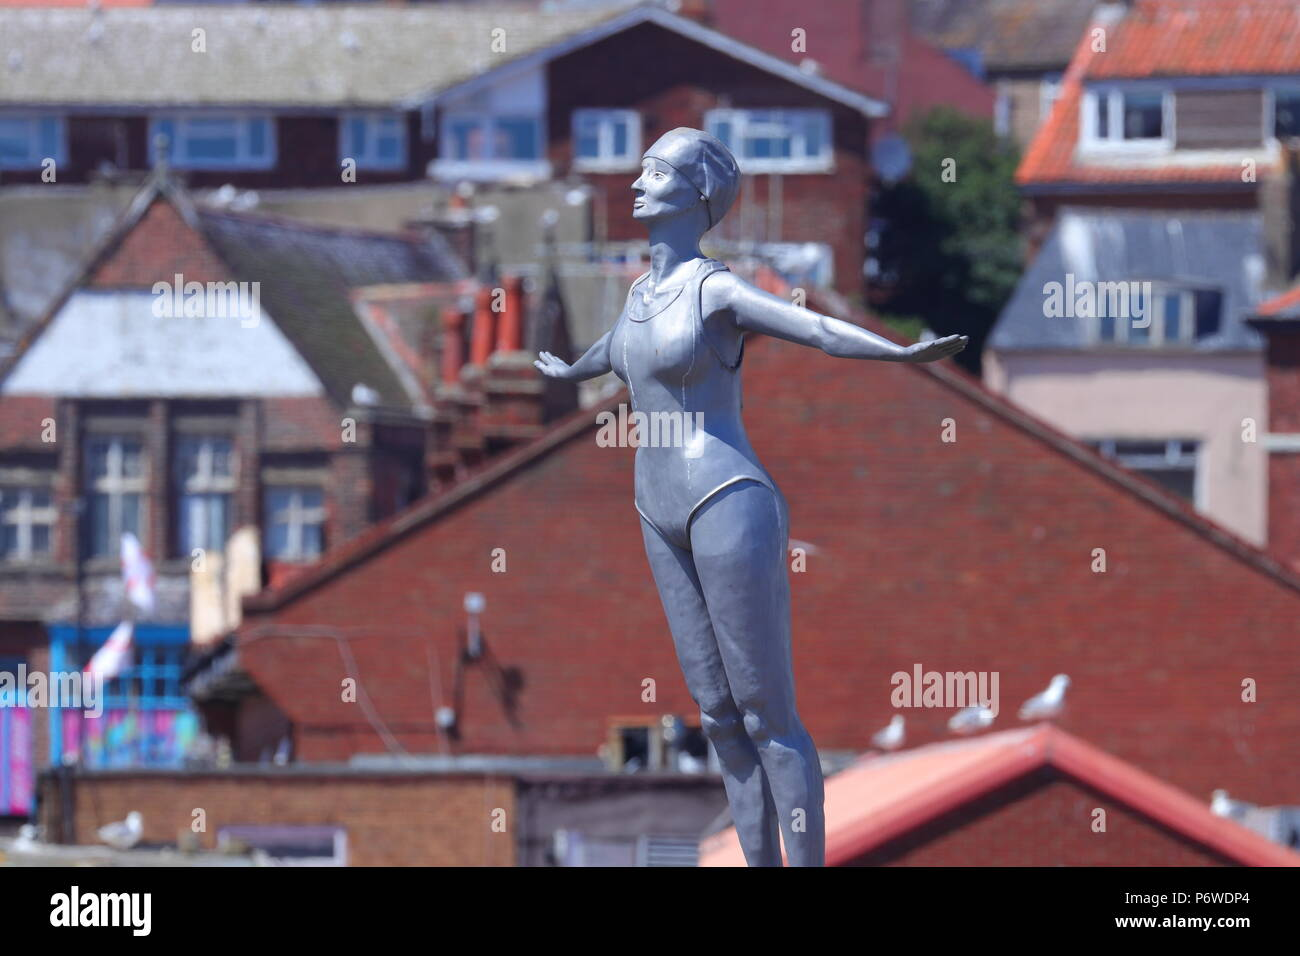 The Diving Belle Sculpture located outside the lighthouse in Scarborough. - Stock Image